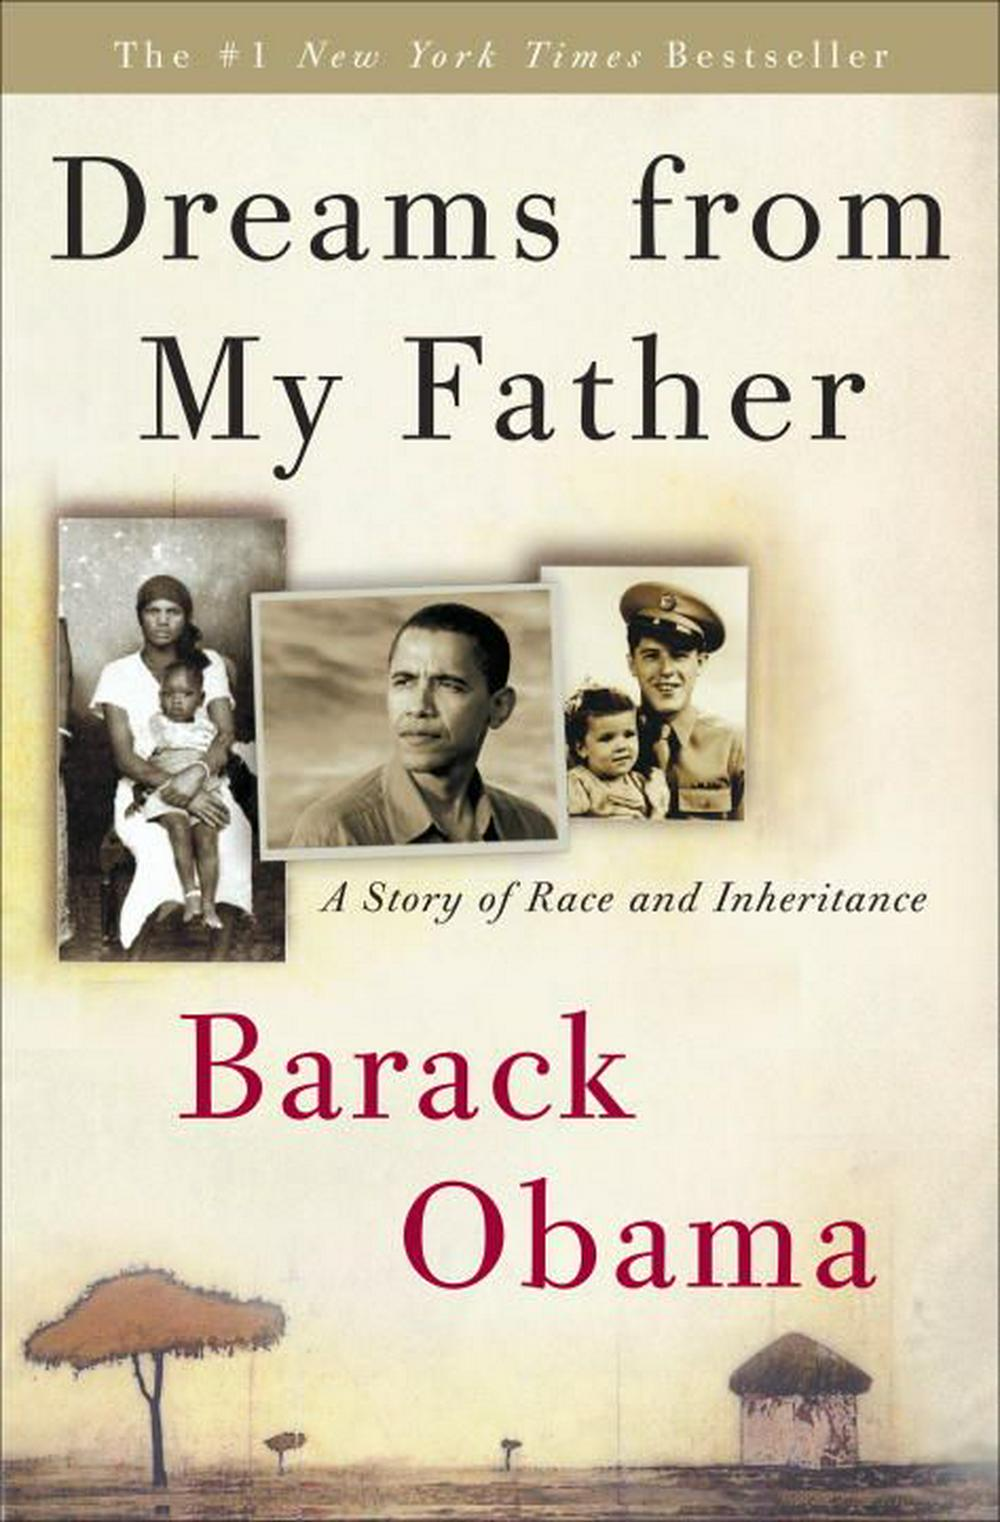 dreams from my father identity essay Dreams from my father opens with obama, age 21, receiving tragic news of his father's death and reverses back to his childhood years, where readers see many of his problems with determining a true identity and purpose in life are rooted.